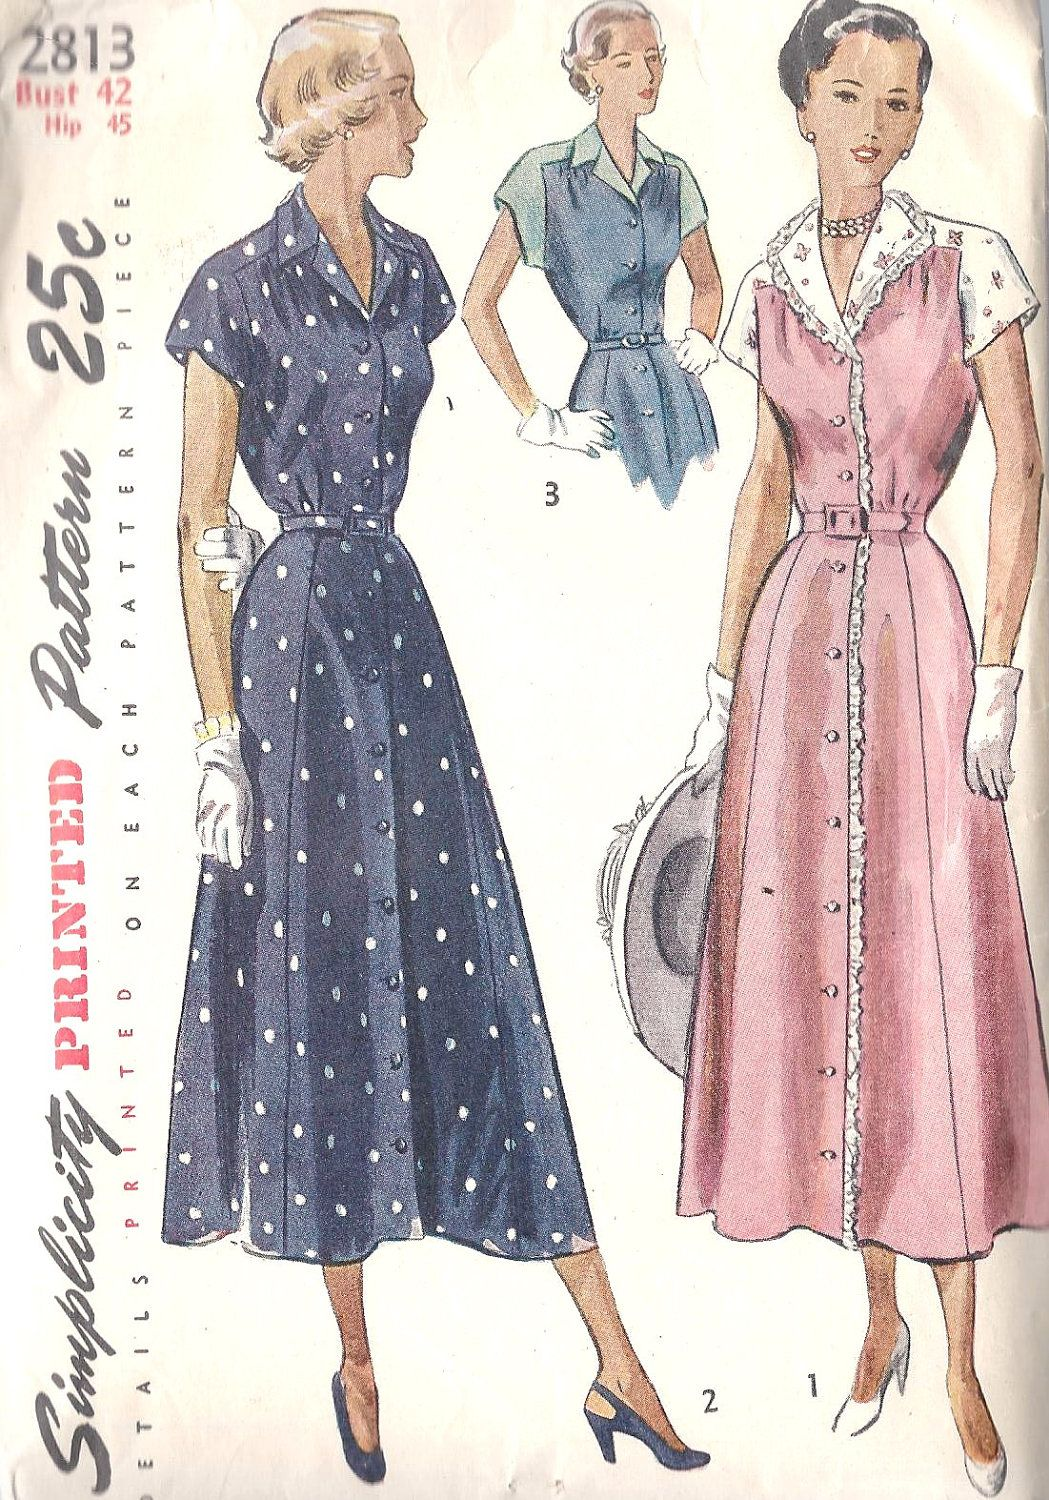 More than 80,000 Vintage Sewing Patterns on Vintage Patterns Wiki Pictures of parents teaching their children